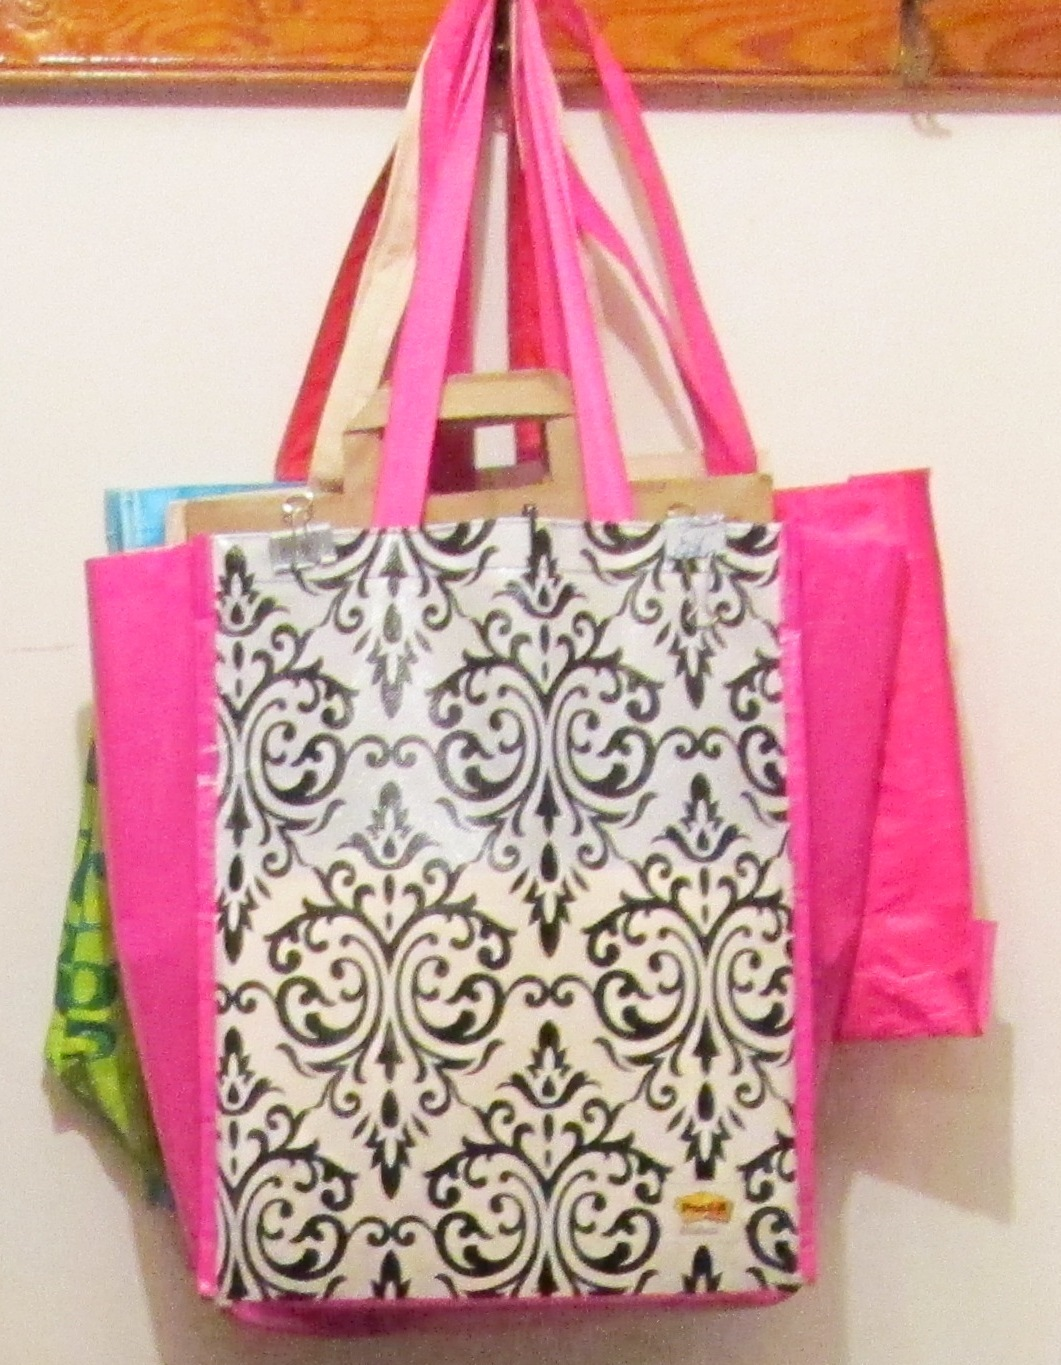 re-usable bags